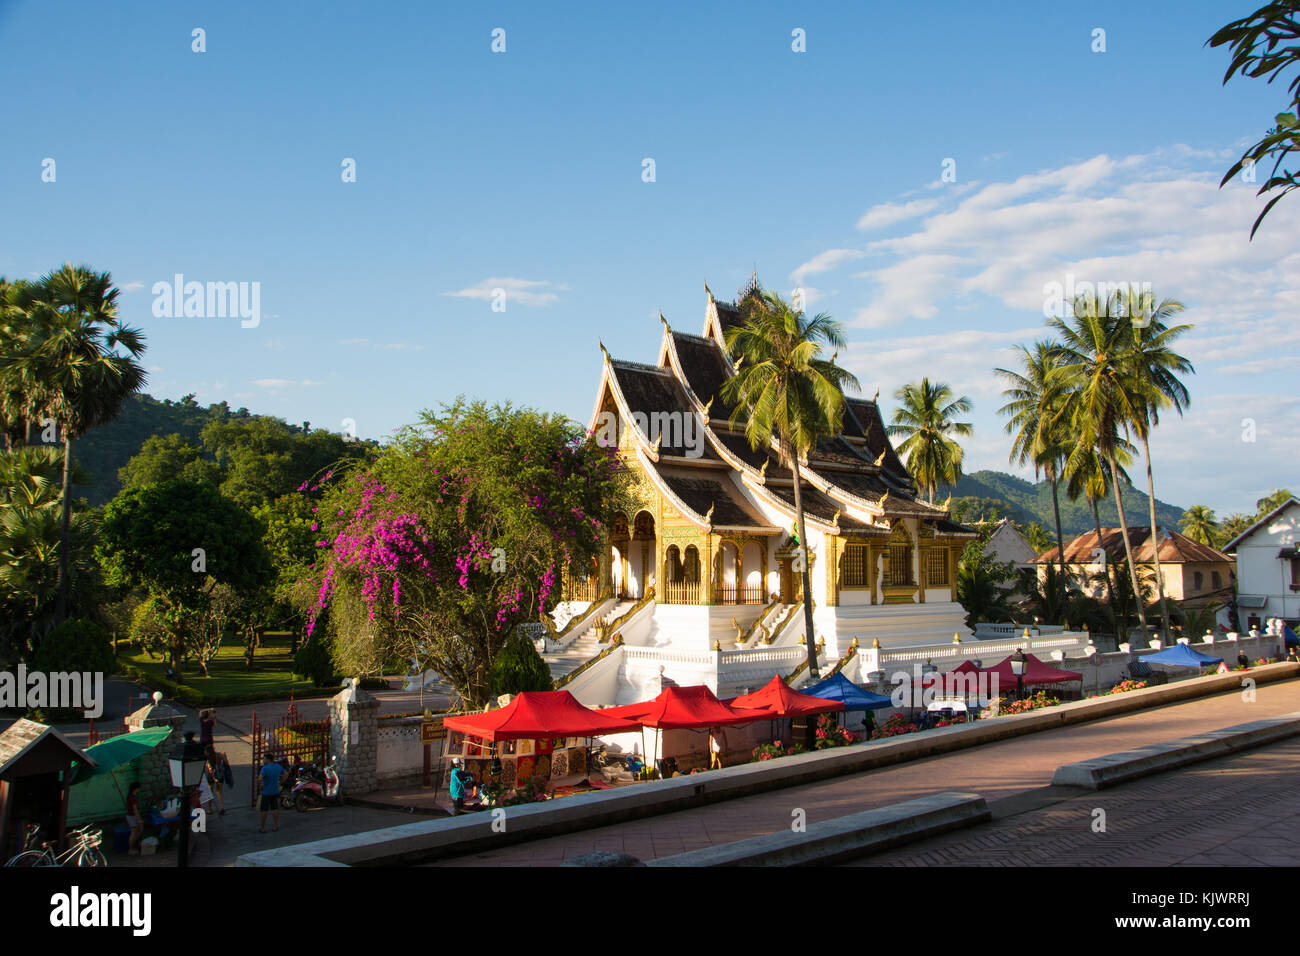 Beginning of the nightmarket in Luang Prabang at sunset - Stock Image